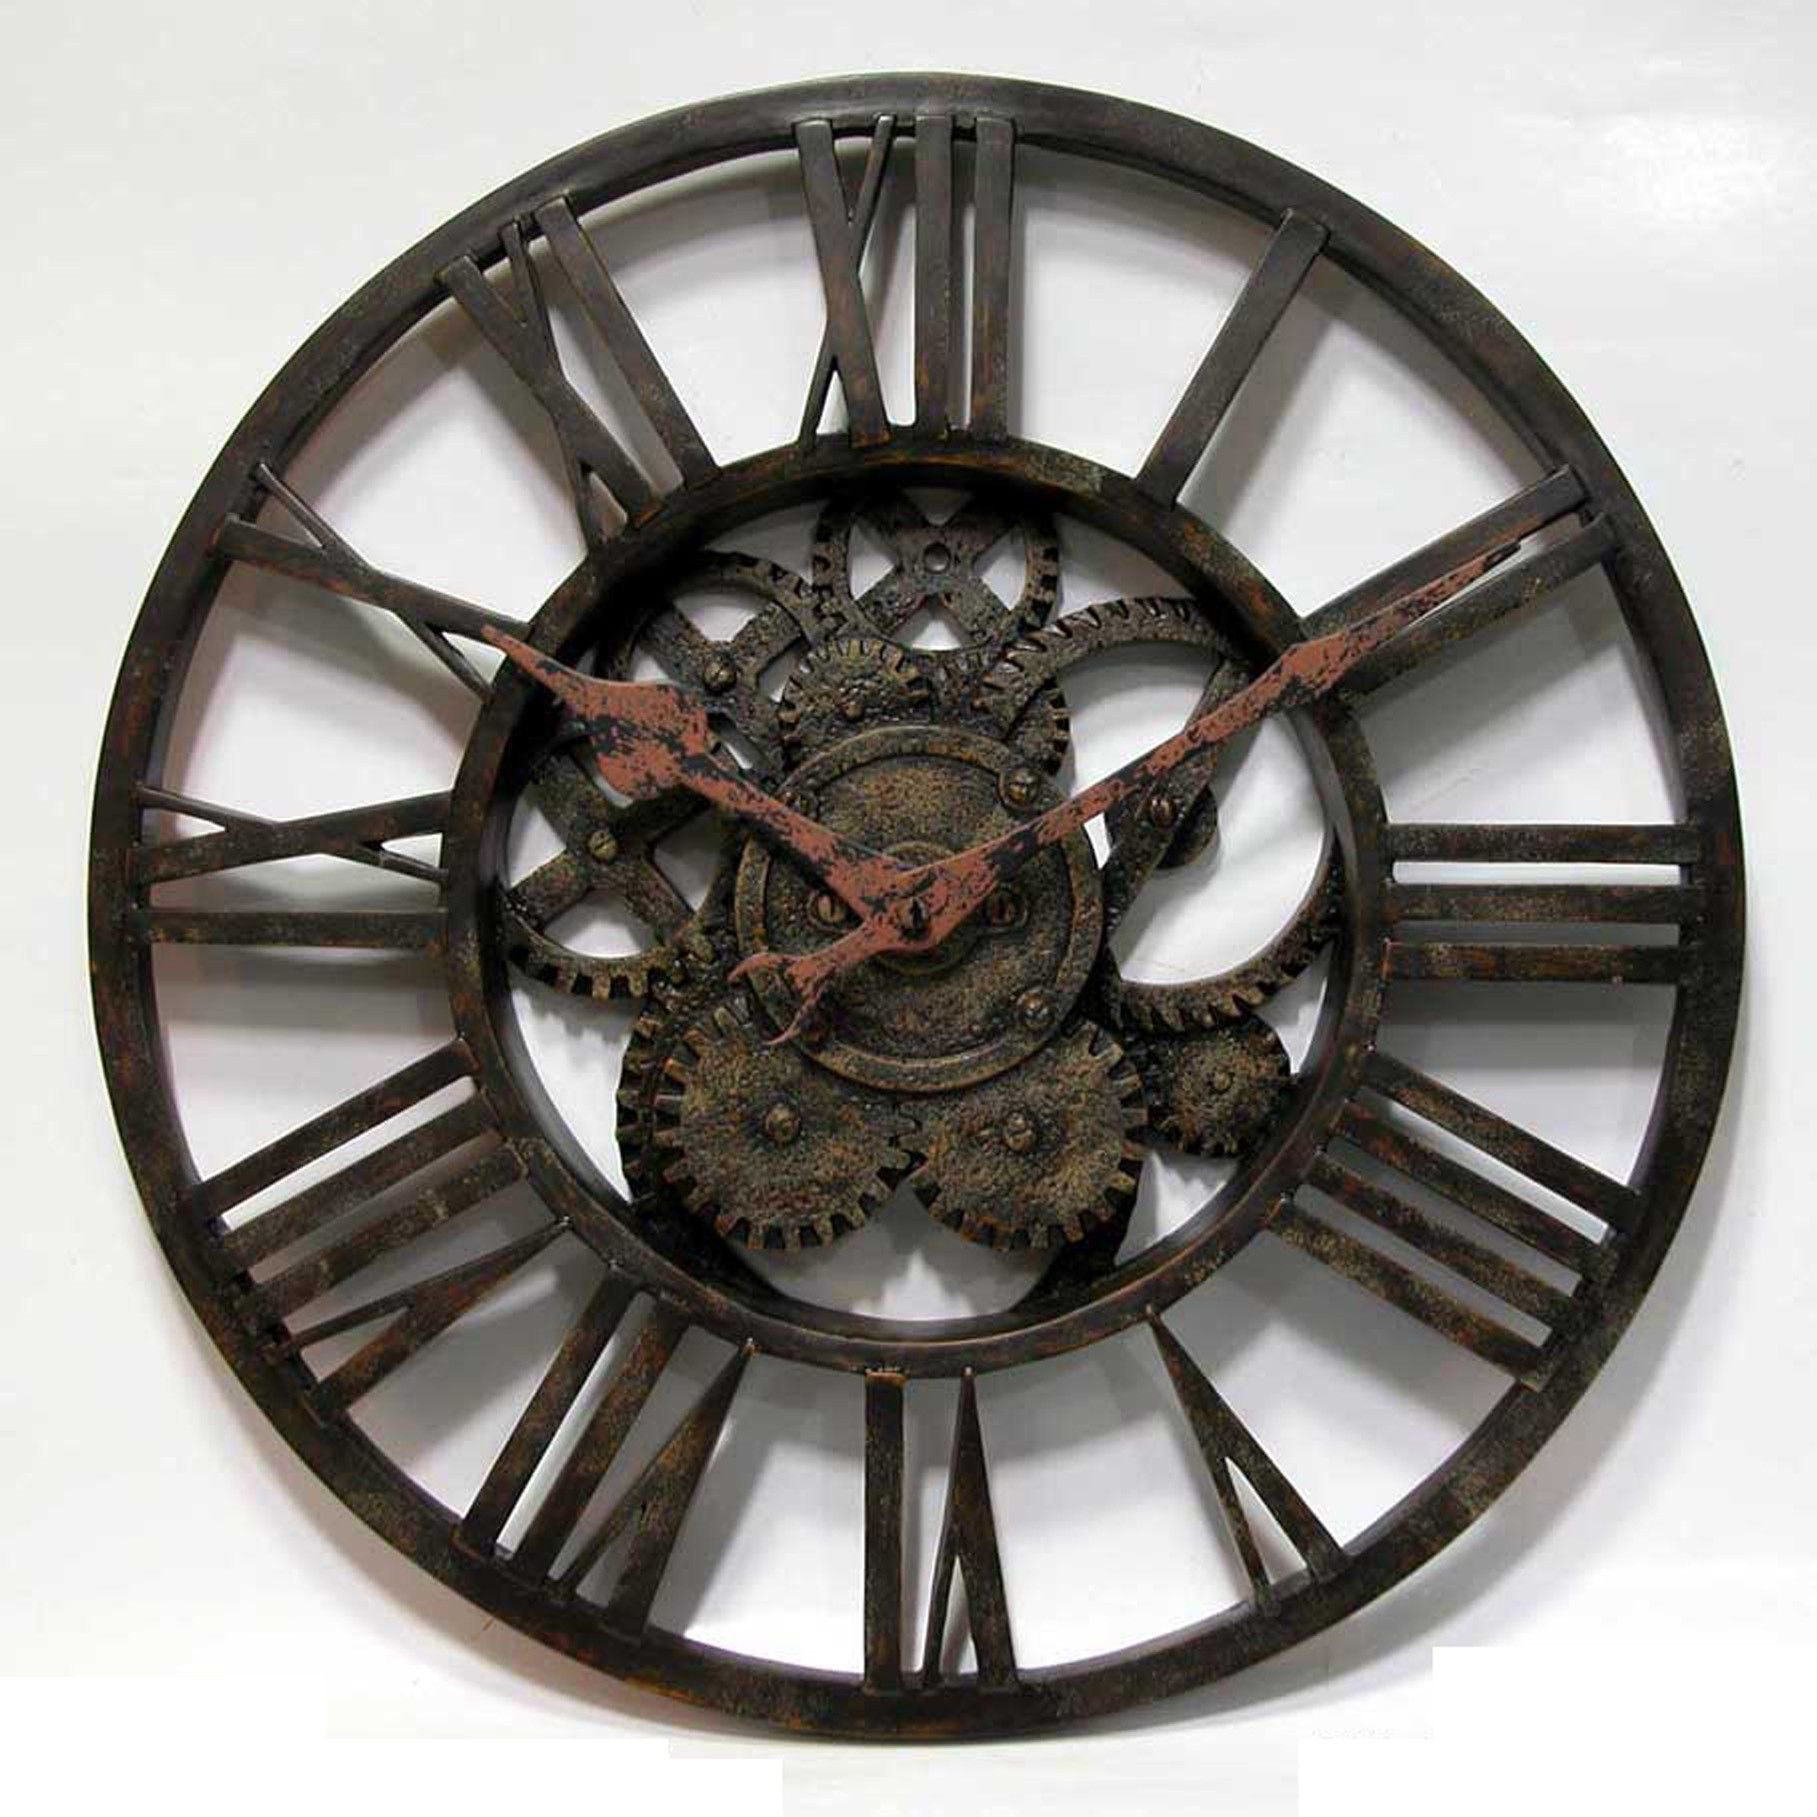 images for wall clock with gears clocks pinterest wall